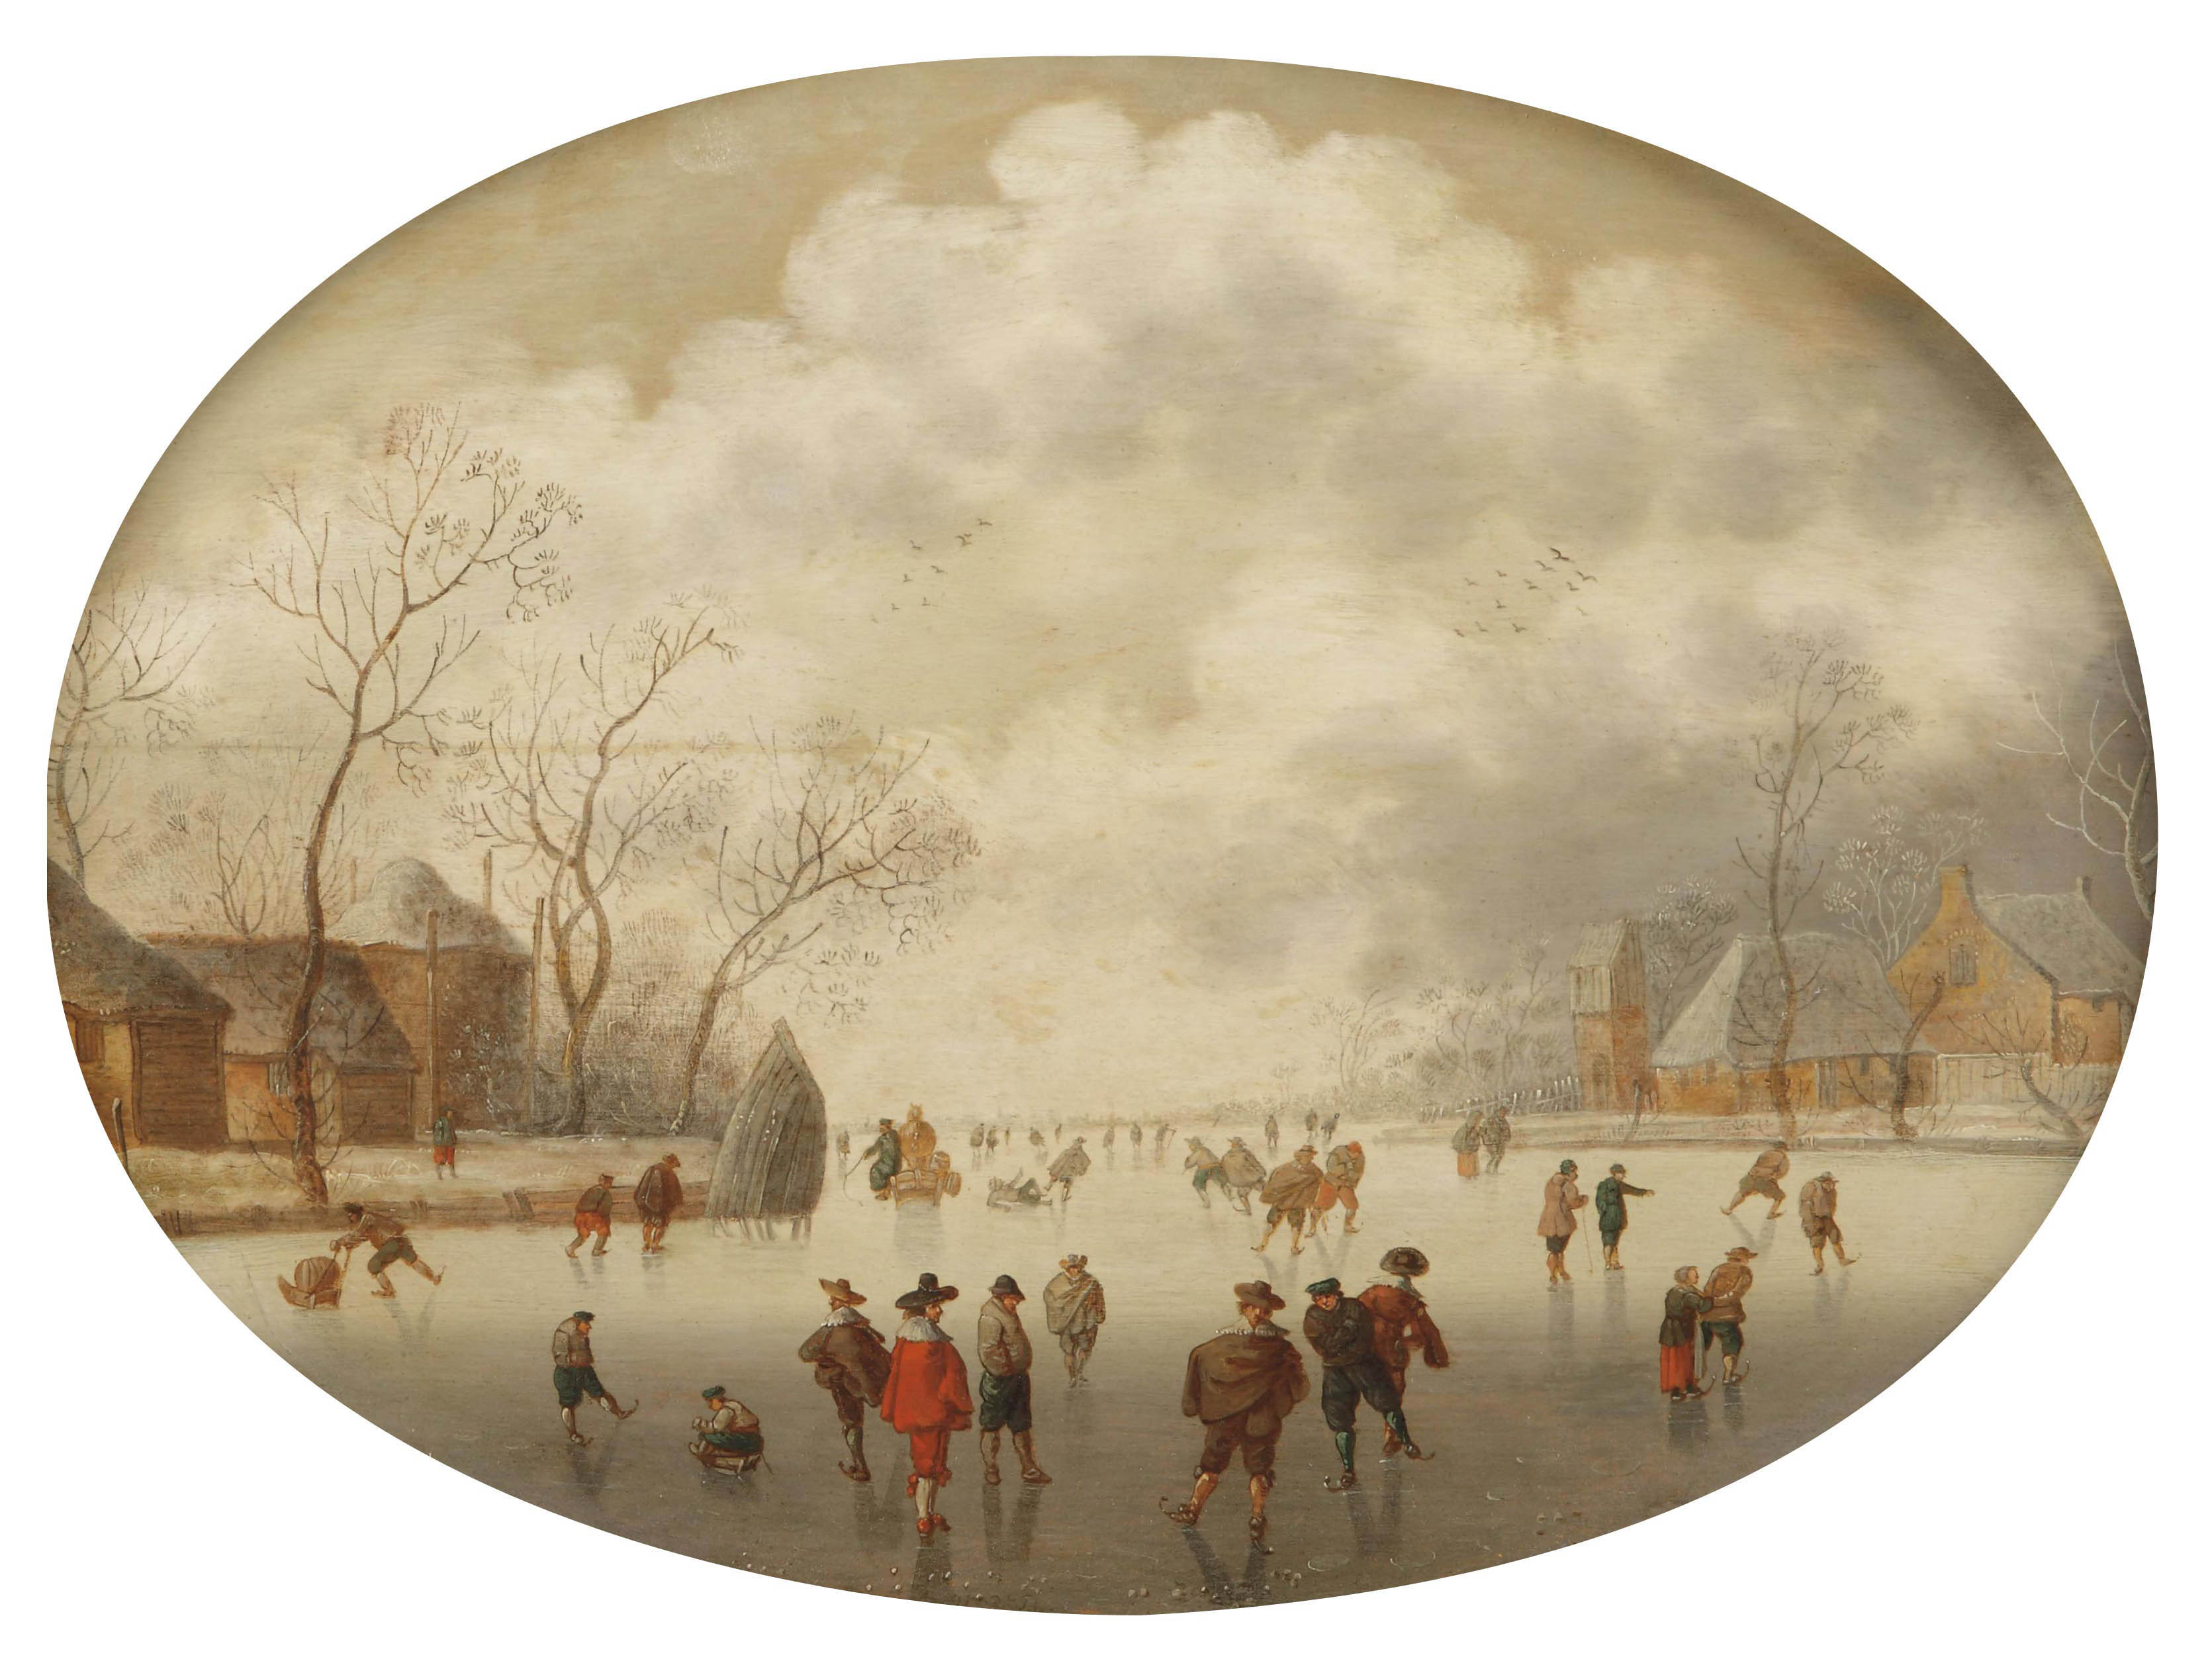 A winterlandscape with figures skating and sleighing on a frozen river near a village